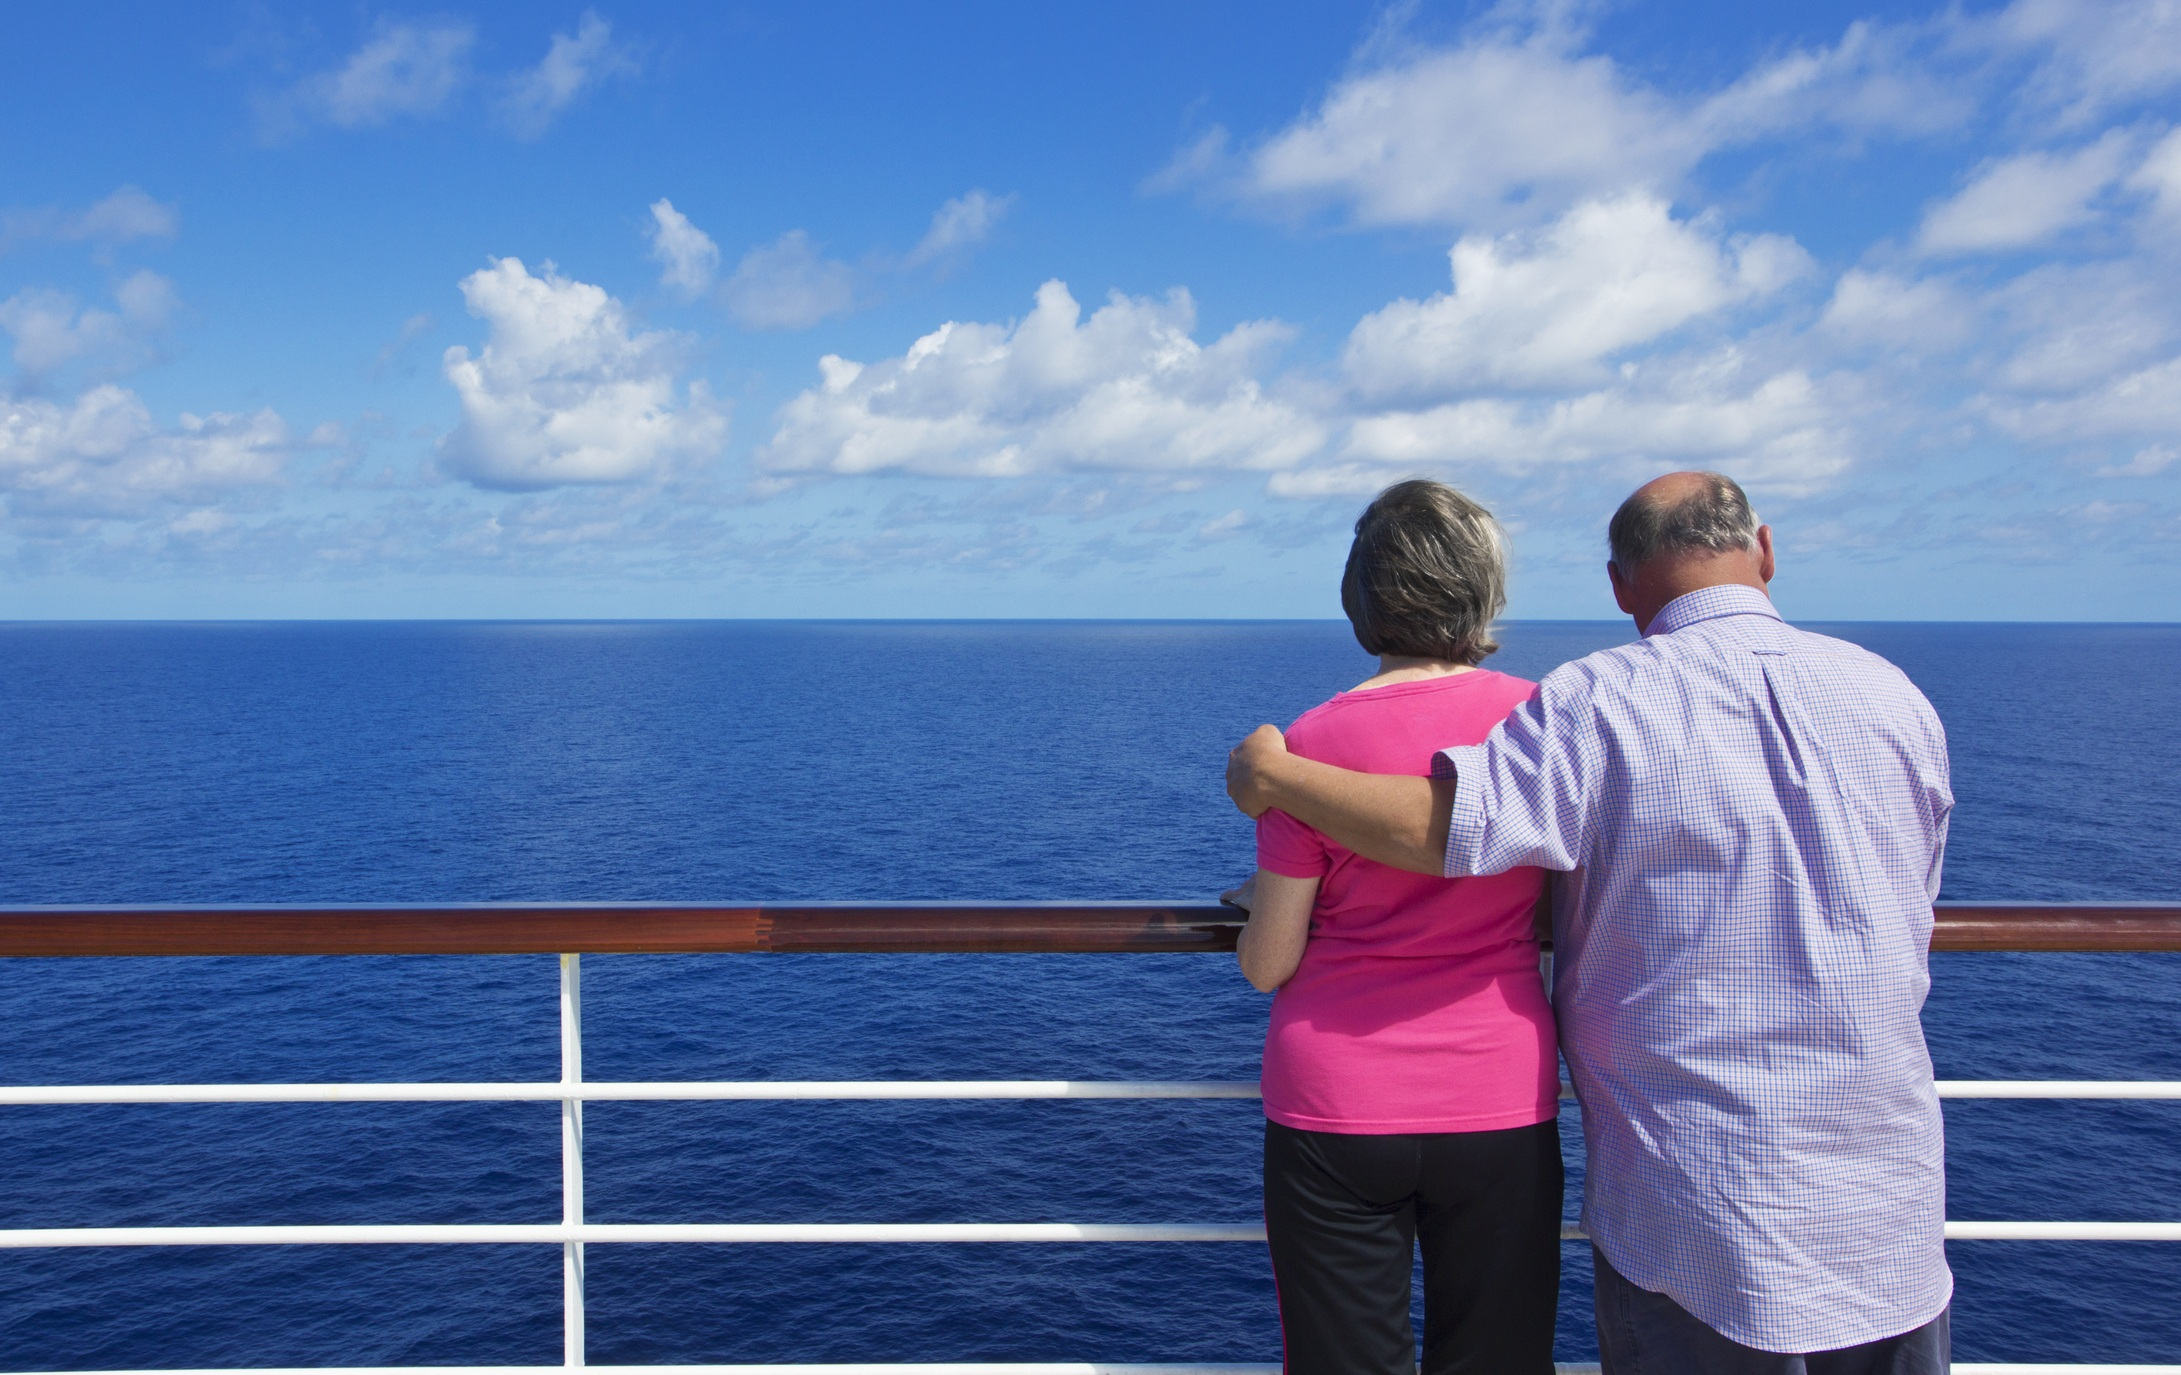 A senior couple looking out at the ocean